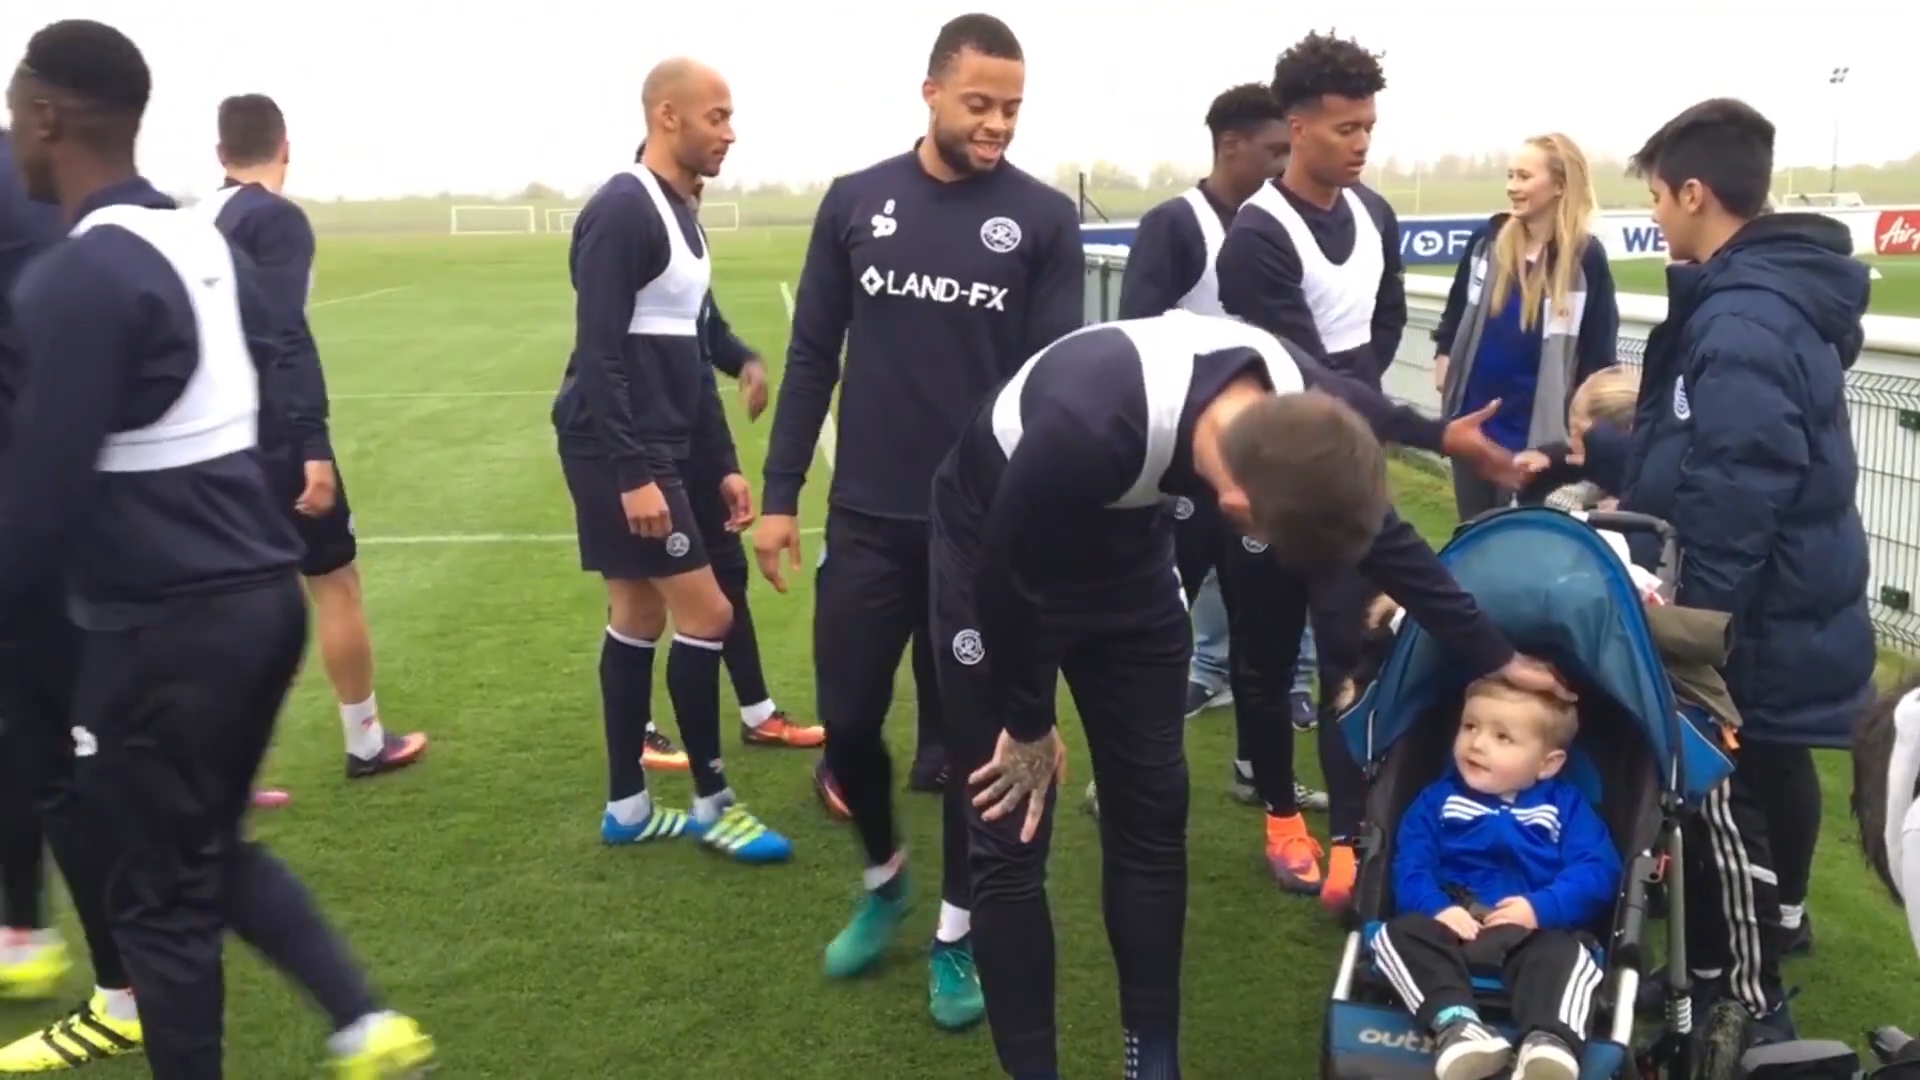 Queen's Park Rangers Football Team, QPR, invited the Together For Freddie Team and the Hunt Family To Visit The Club For A Day.